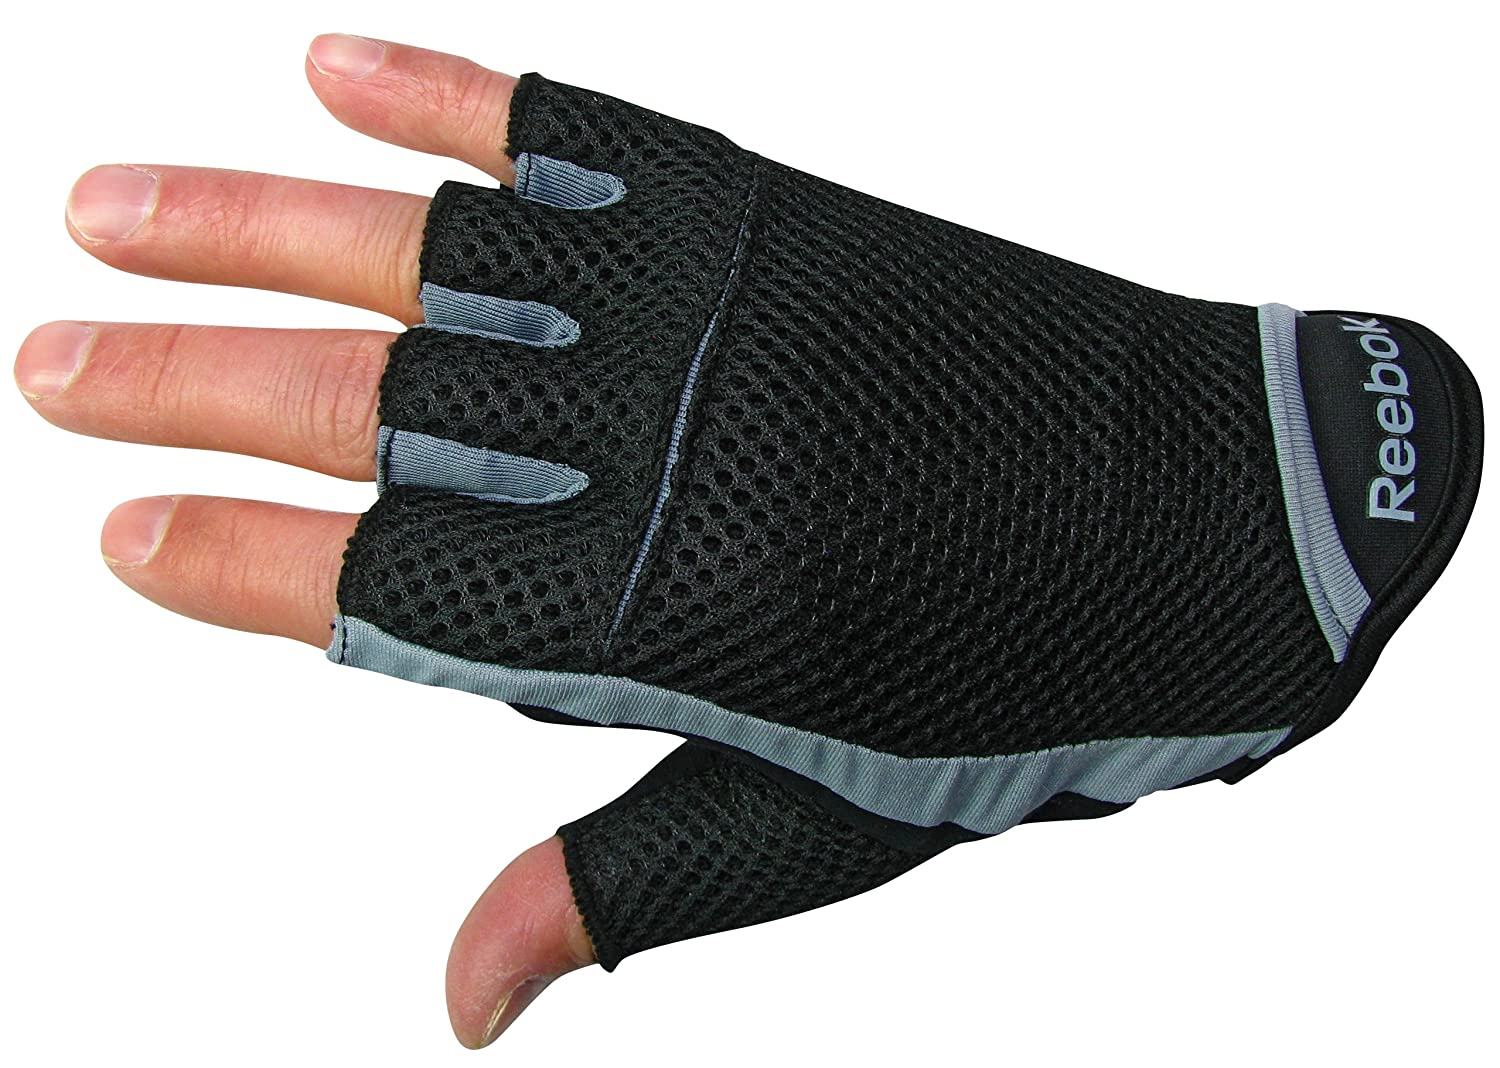 Reebok Men's Fitness Gloves Review